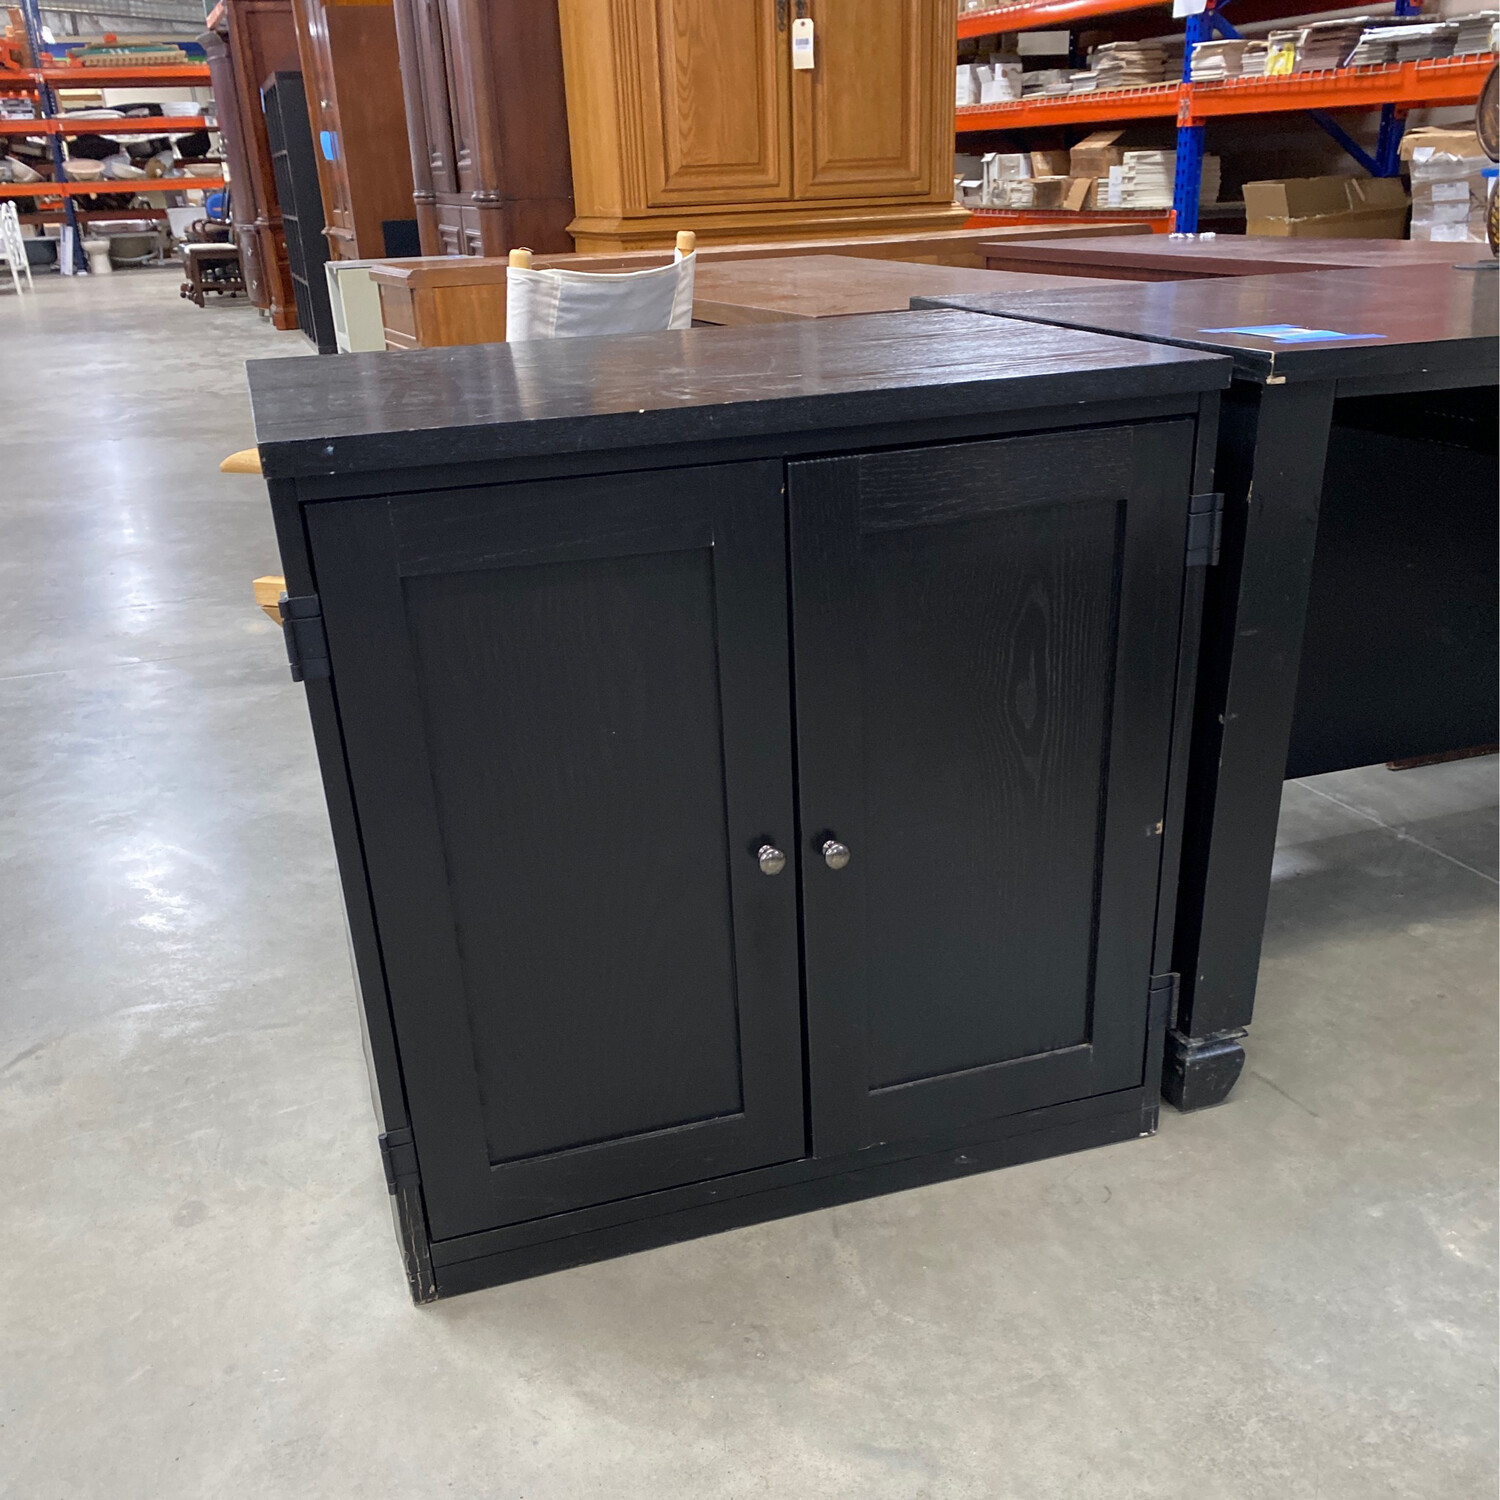 CLEARANCE-DESK AND 1 CABINETS